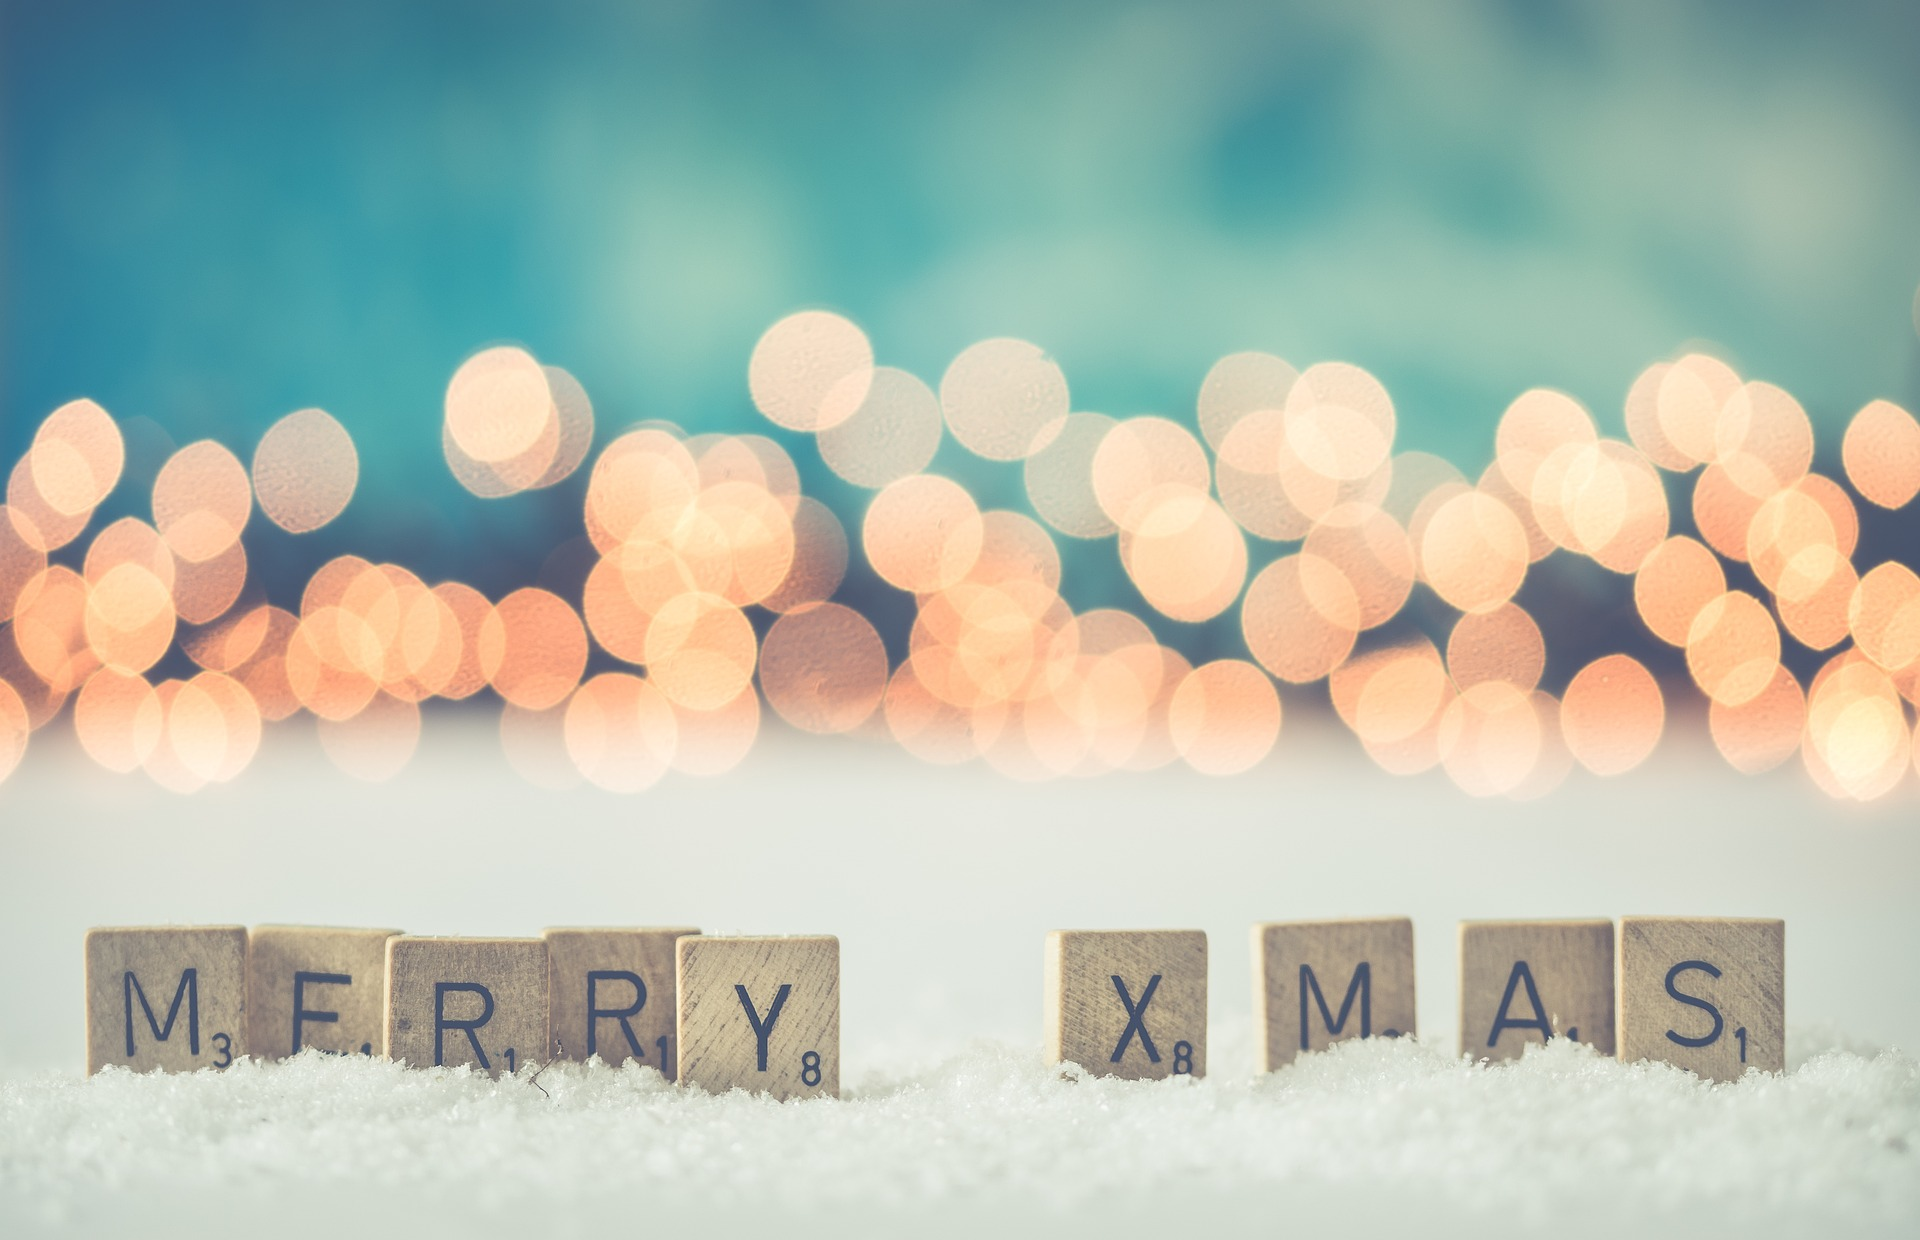 Letters in the snow on wooden scrabble tiles spelling out Merry Christmas with twinkling lights in the background